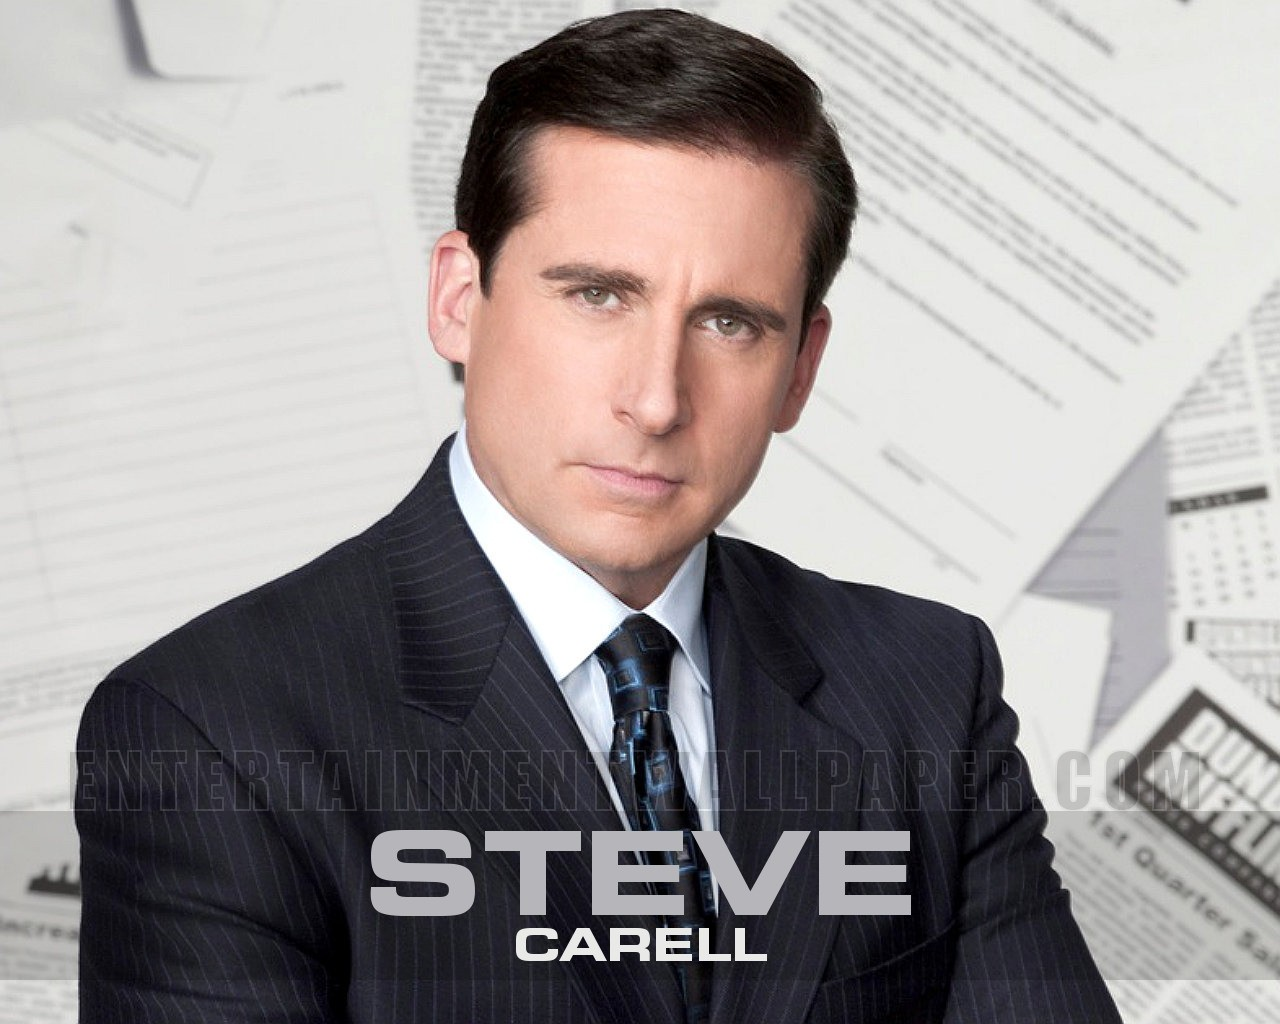 Steve Carell Images